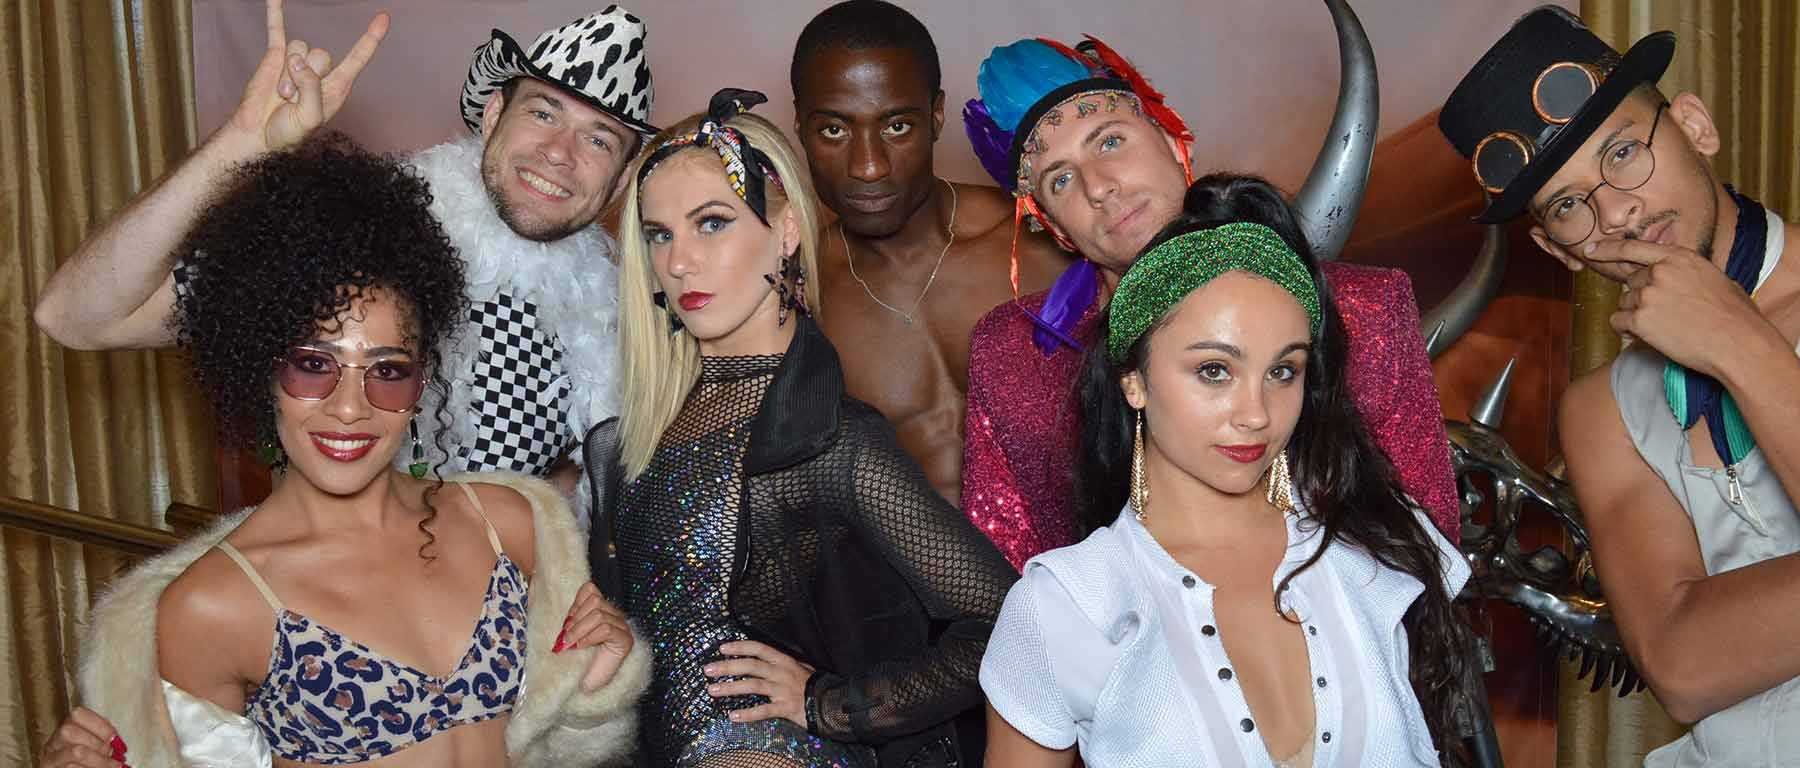 group of dancers at the photobooth